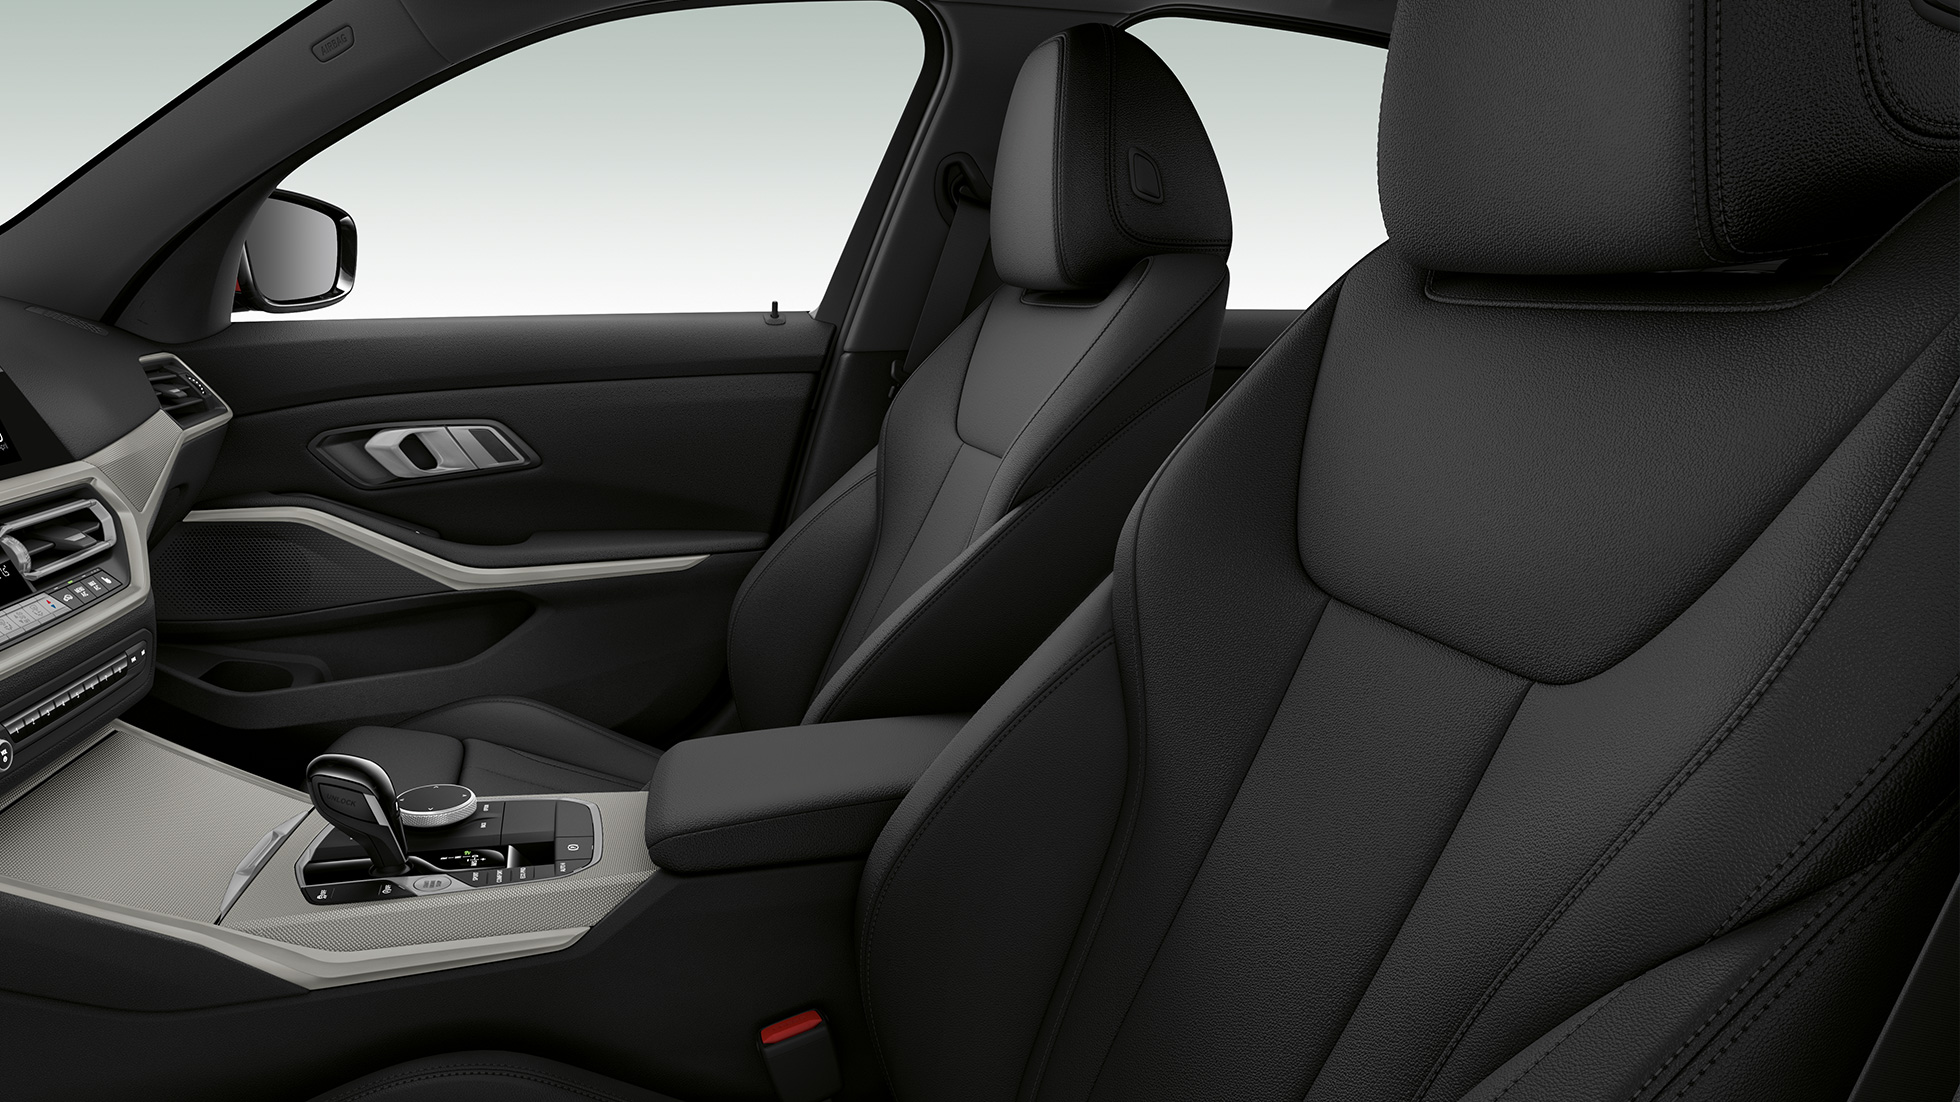 Side close-up of the front seats of the BMW 3 Series Sedan with model Advantage features.